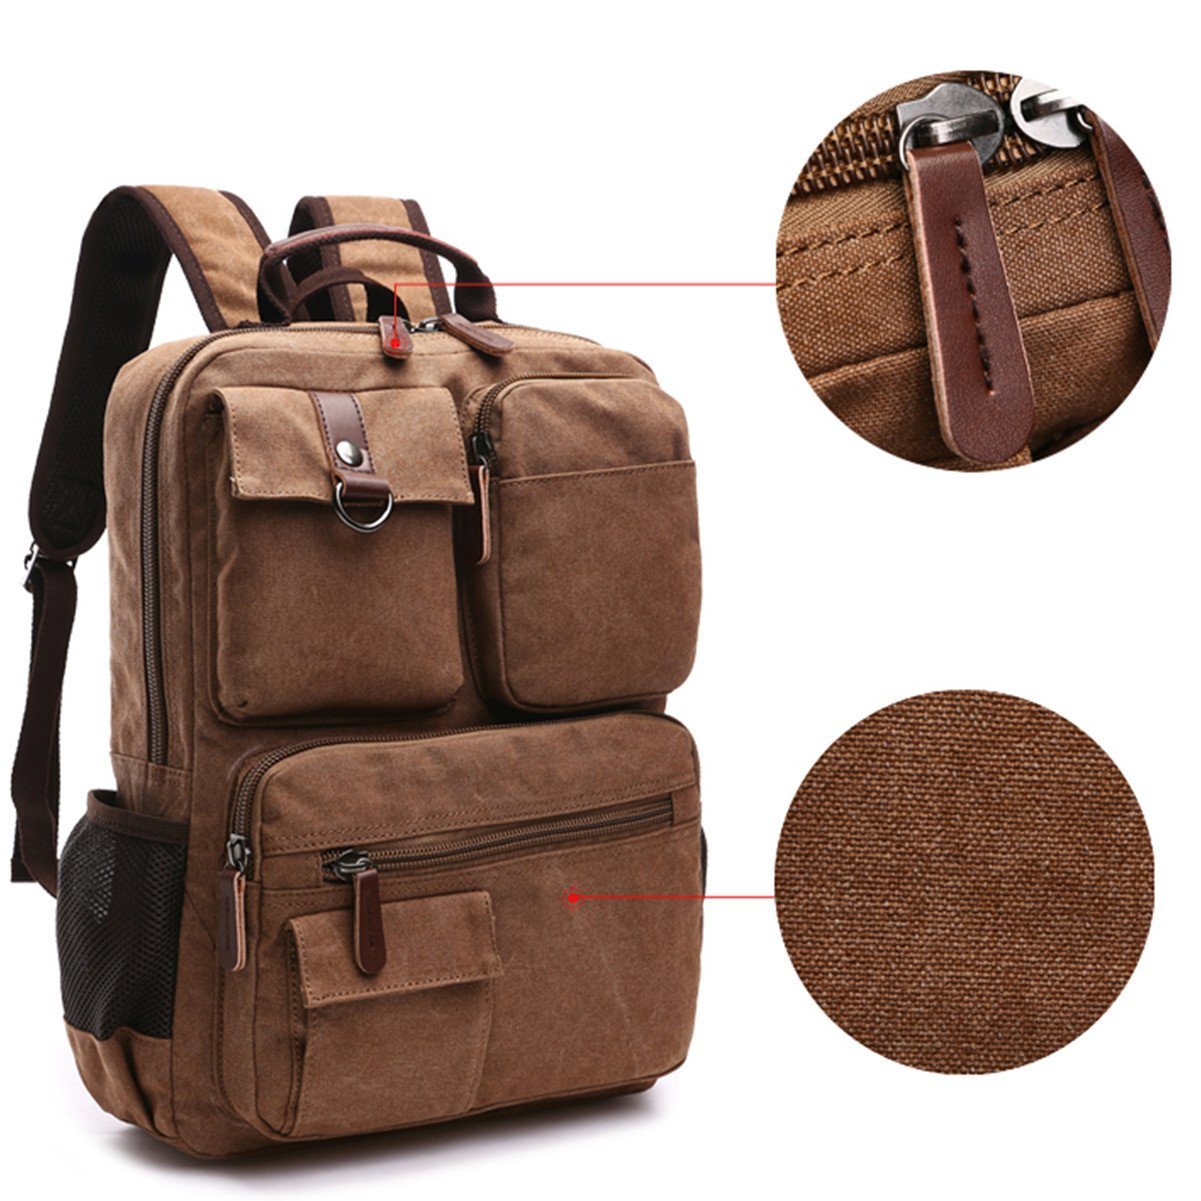 Aidonger Vintage Canvas School Backpack Laptop Backpack 2